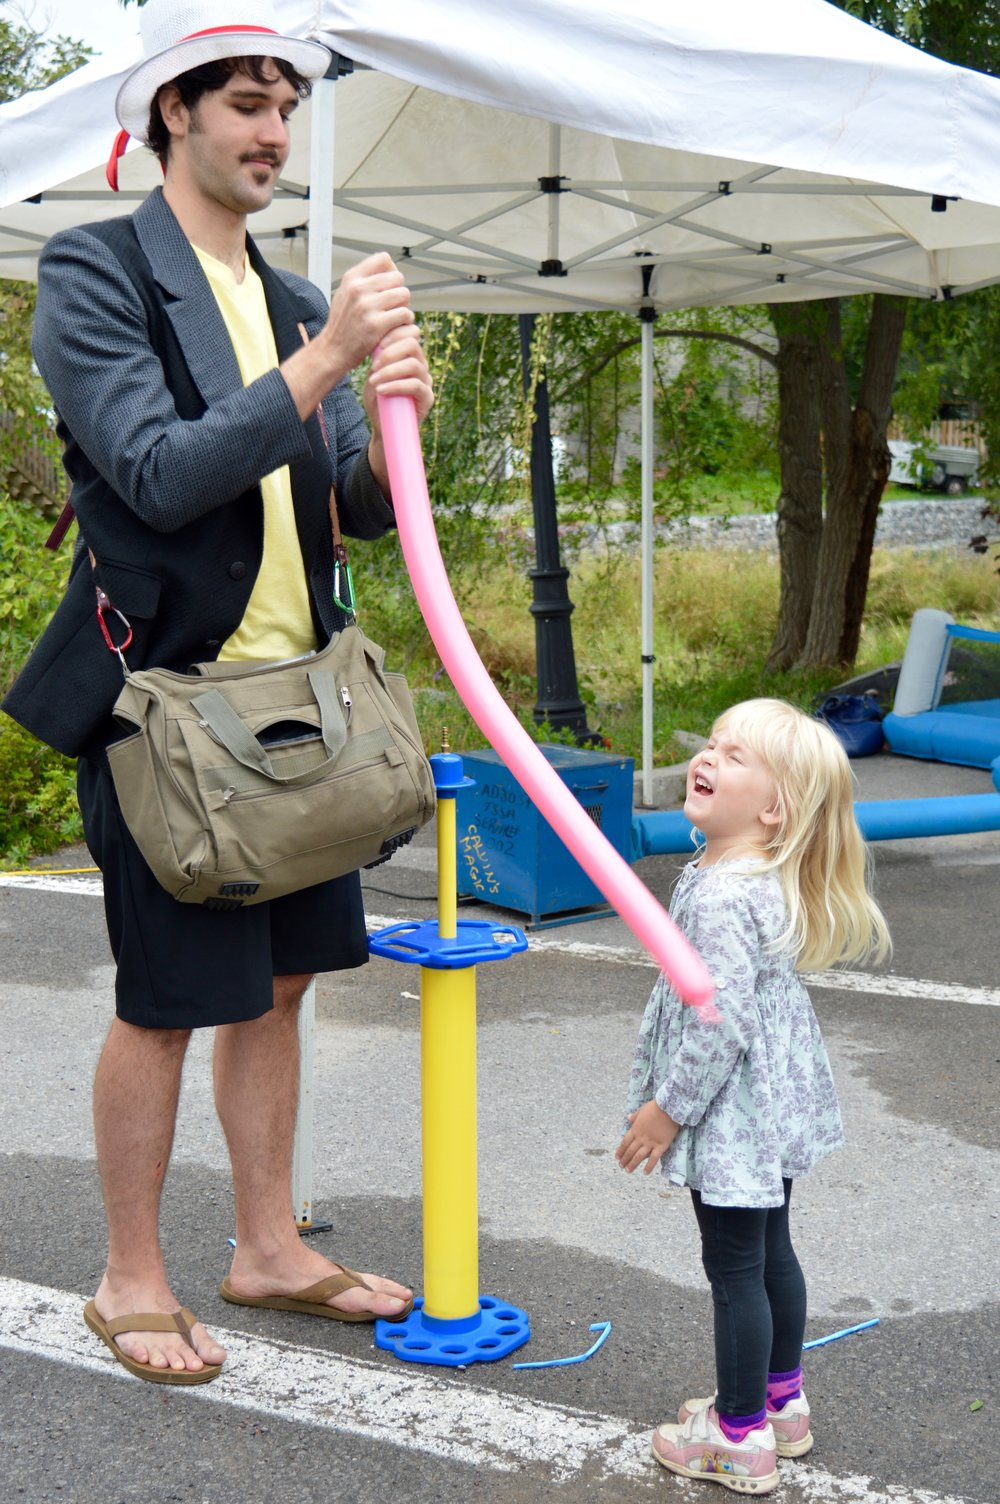 Madeline Cooney of Stirling seems to be enjoying the talents of Christopher The Twistopher at the 2016 Stirling Water Buffalo Festival. The Balloon Sculptor Extraordinaire entertained for hours in the festival's Kidz Zone.